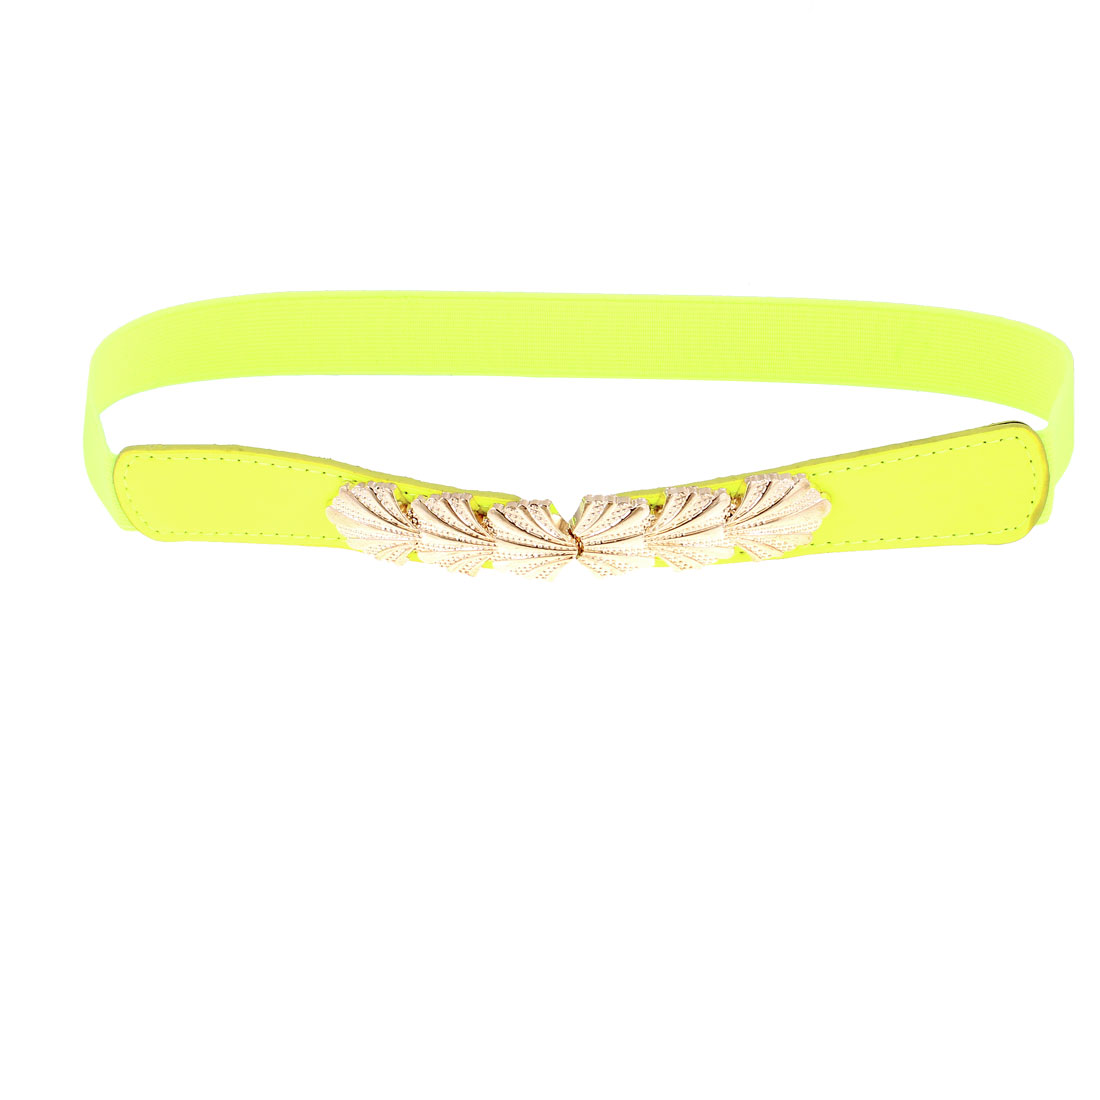 Lady Leaf Interlocking Buckle 2.5cm Wide Elastic Waist Belt Yellow Green